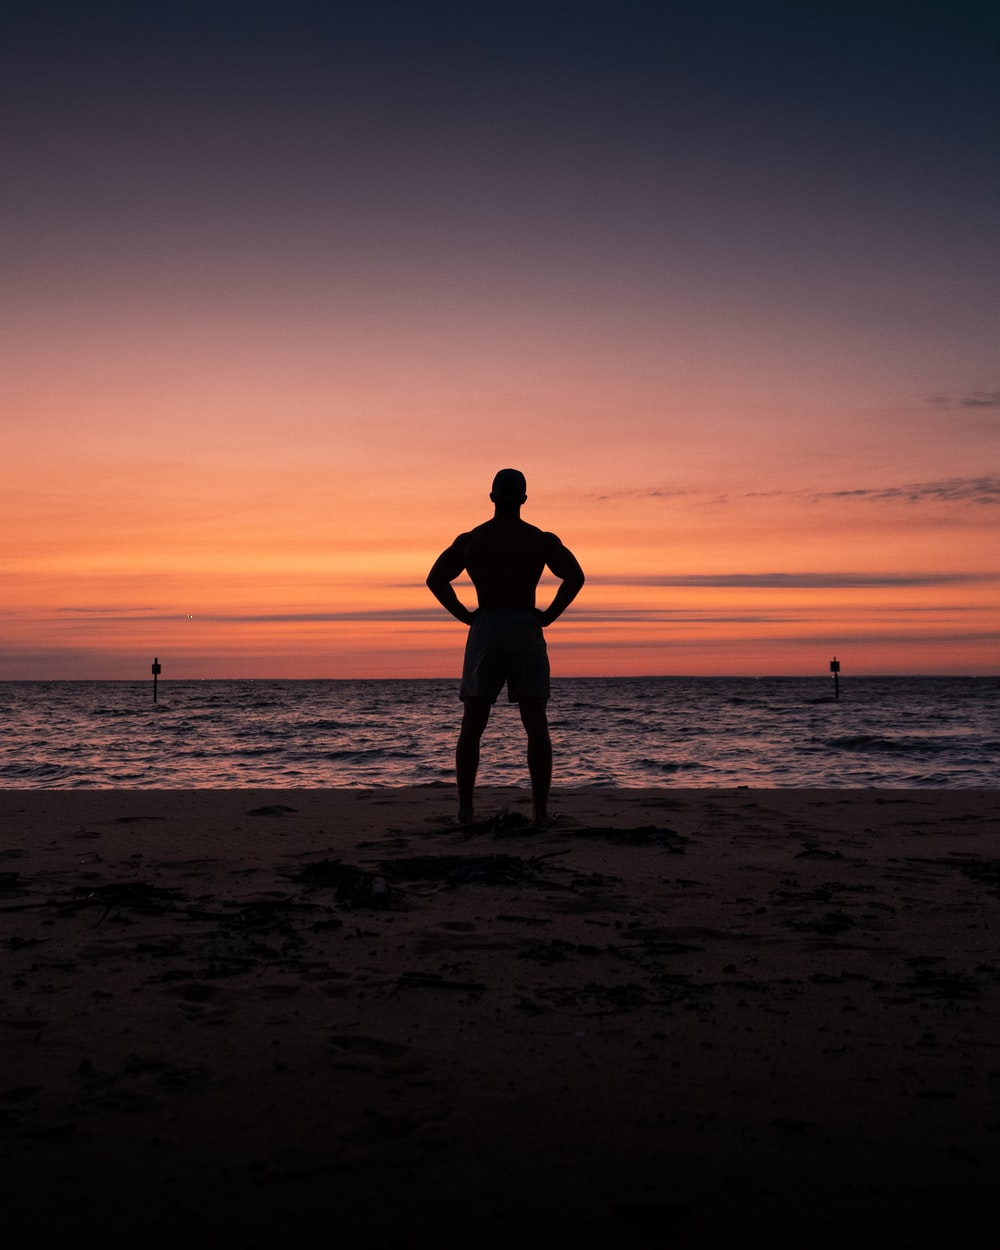 silhouette of man and woman standing on beach during sunset